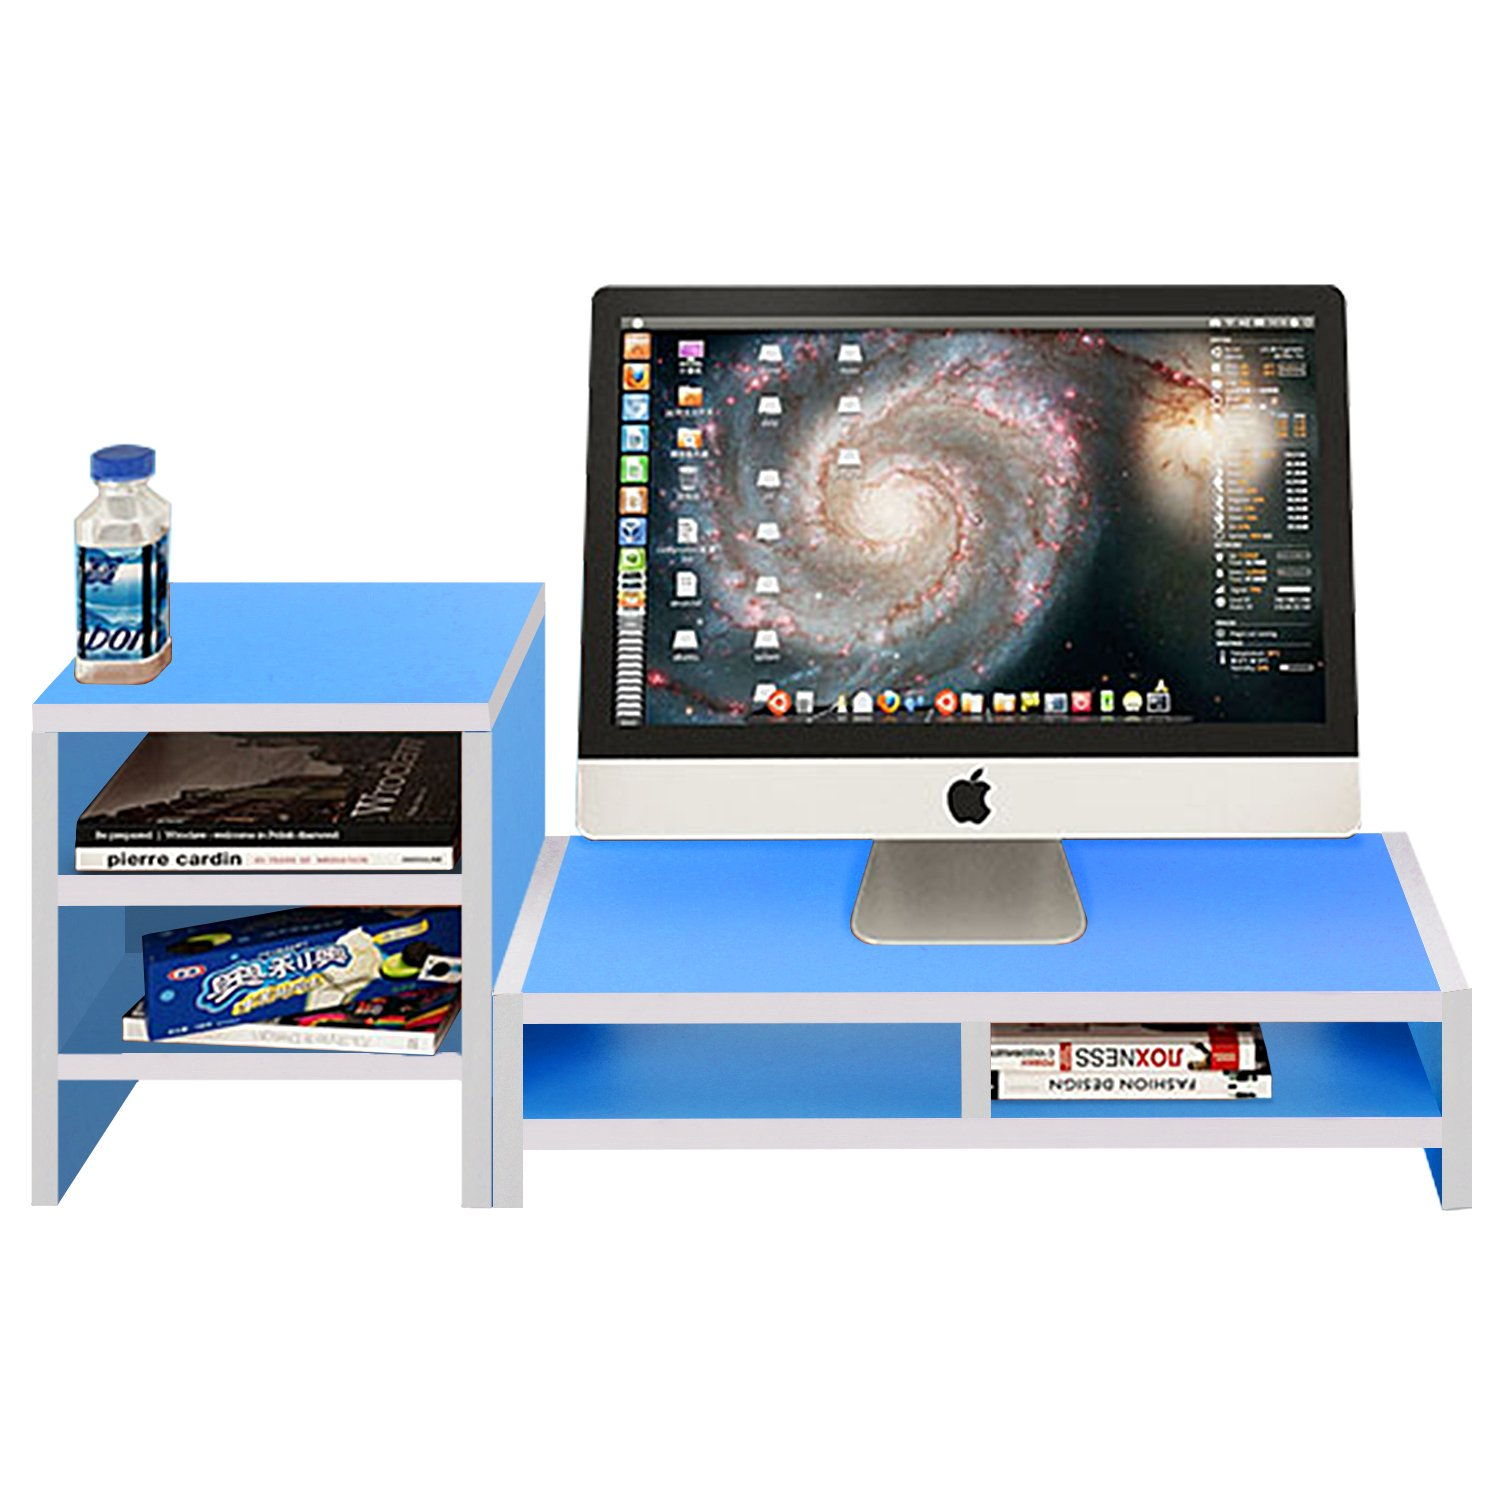 DL furniture - Monitor Stand 2 Compartment Organizer Come With Portable Tall Side Stand | Lake Blue